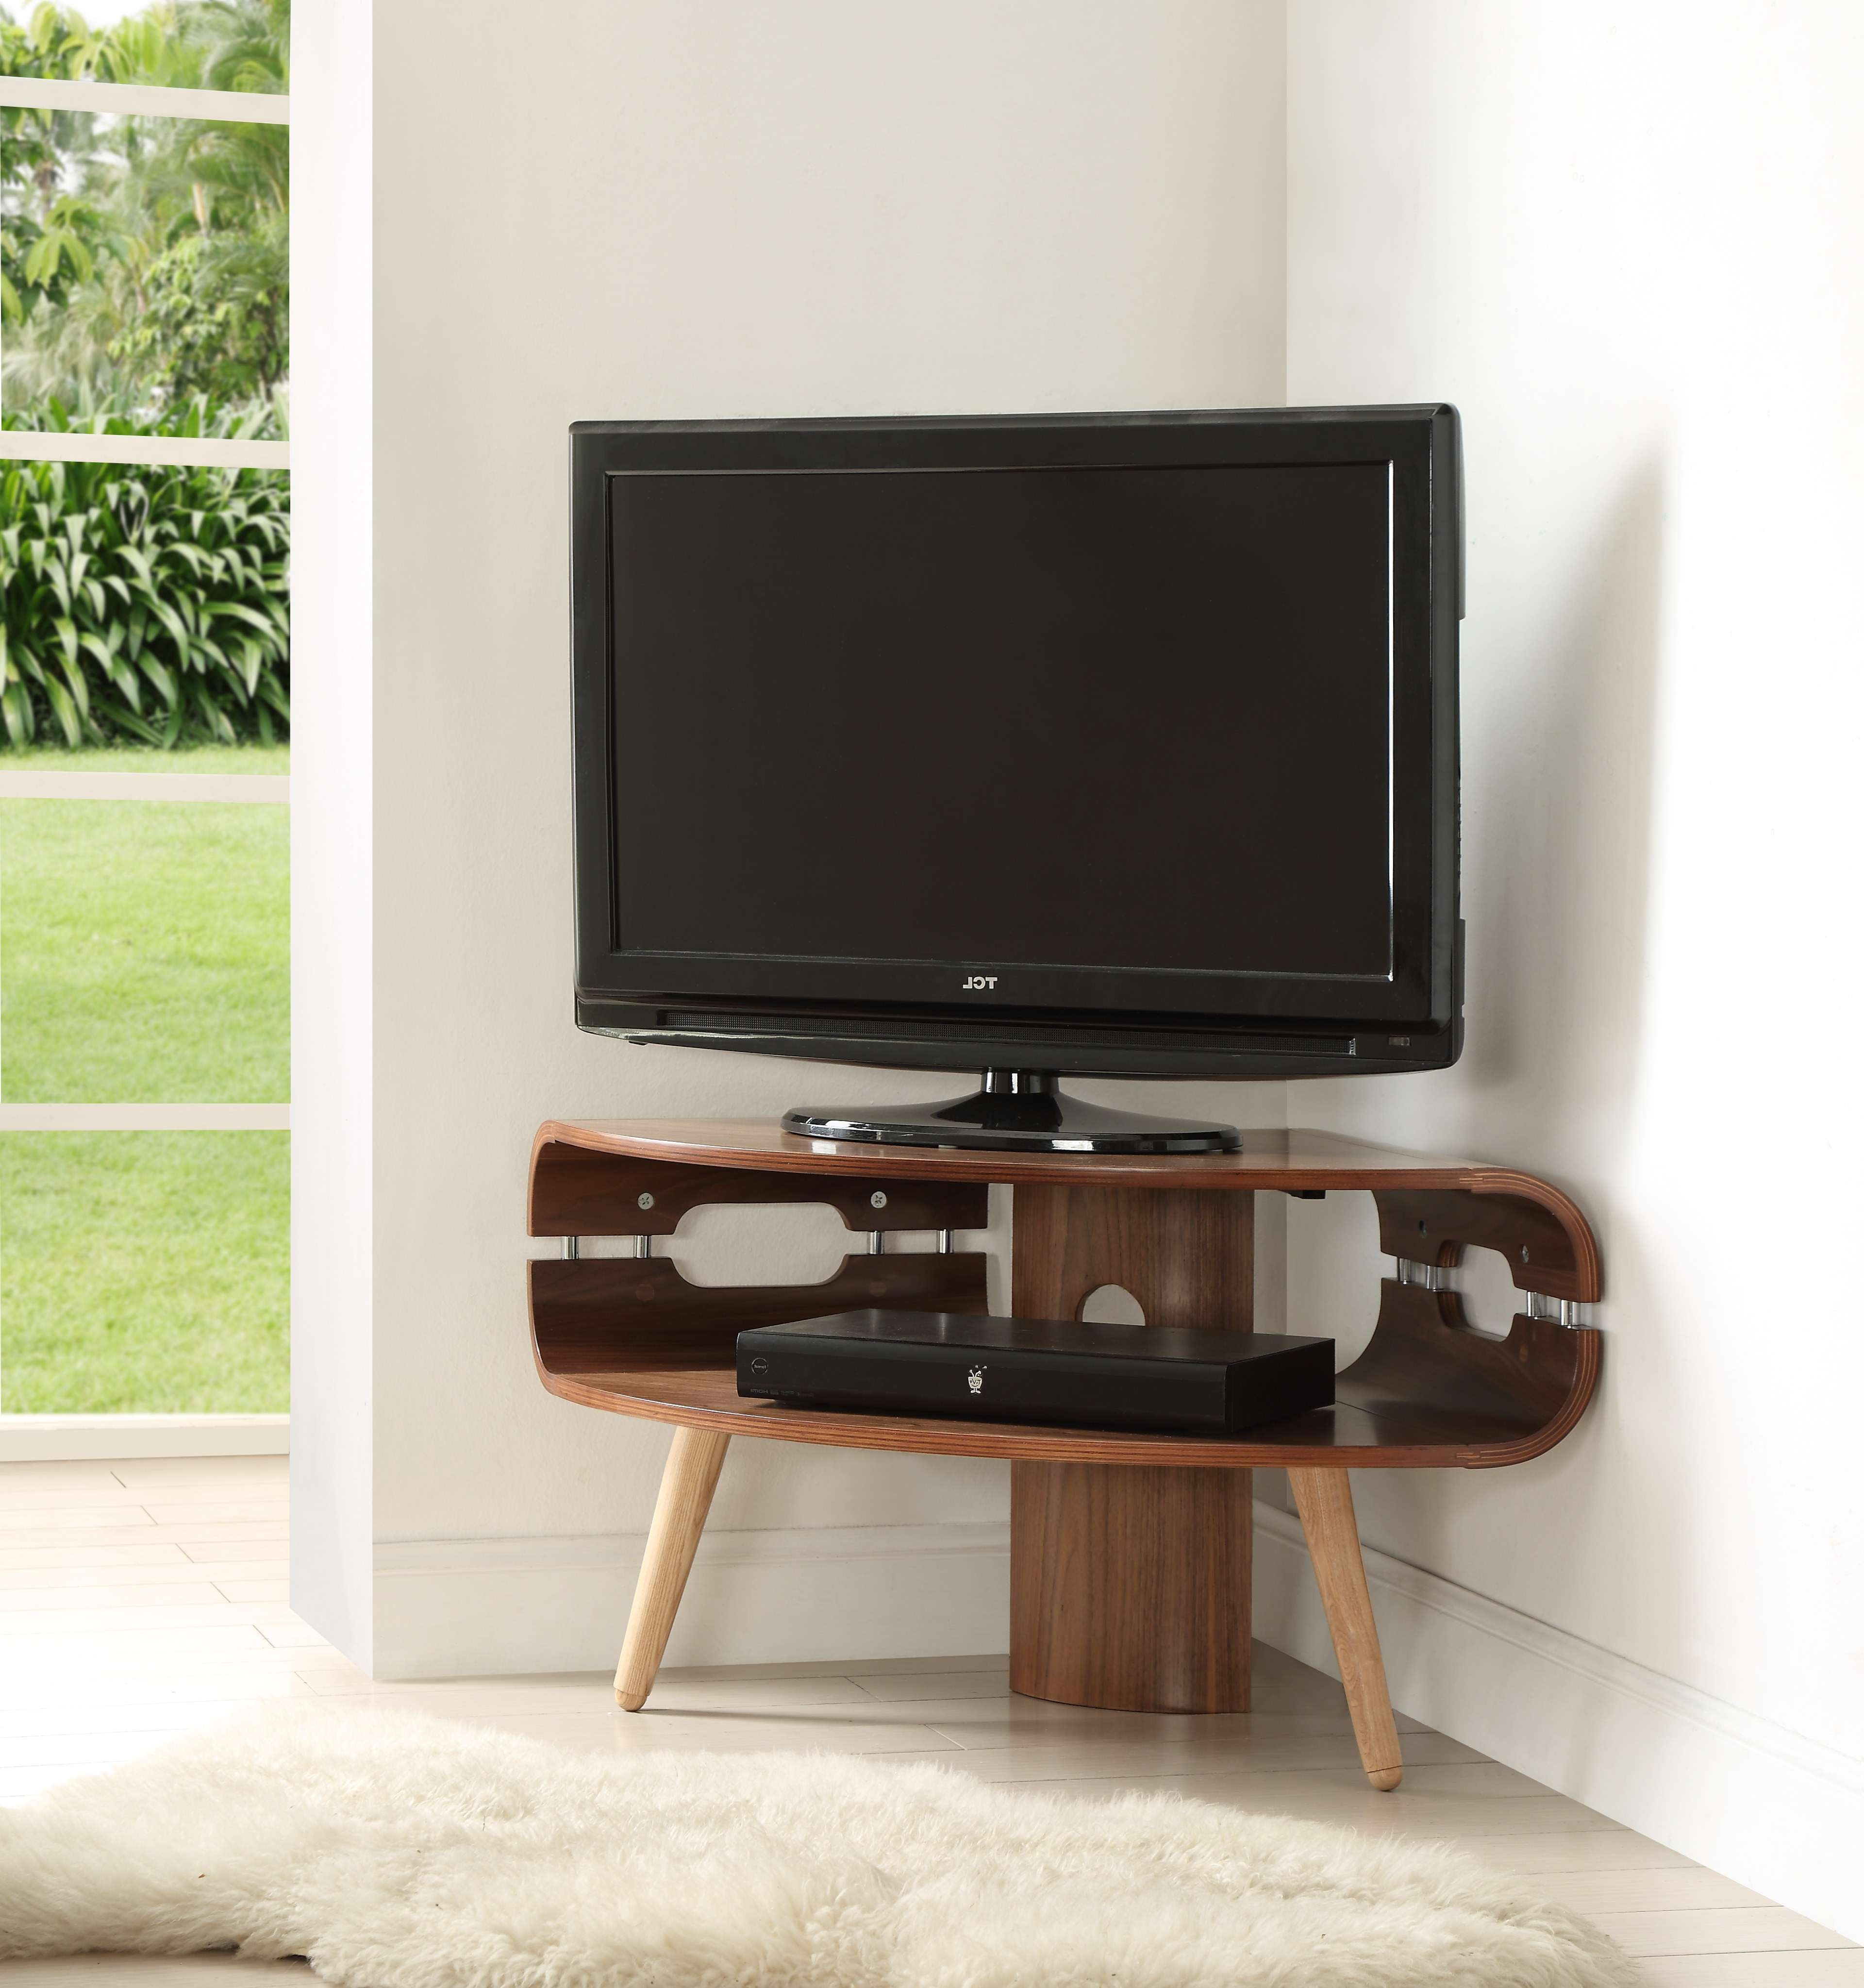 Tv Stand : Black Corner Fireplace Tv Stand Natural Wood Standtv With Wood Corner Tv Cabinets (View 14 of 20)